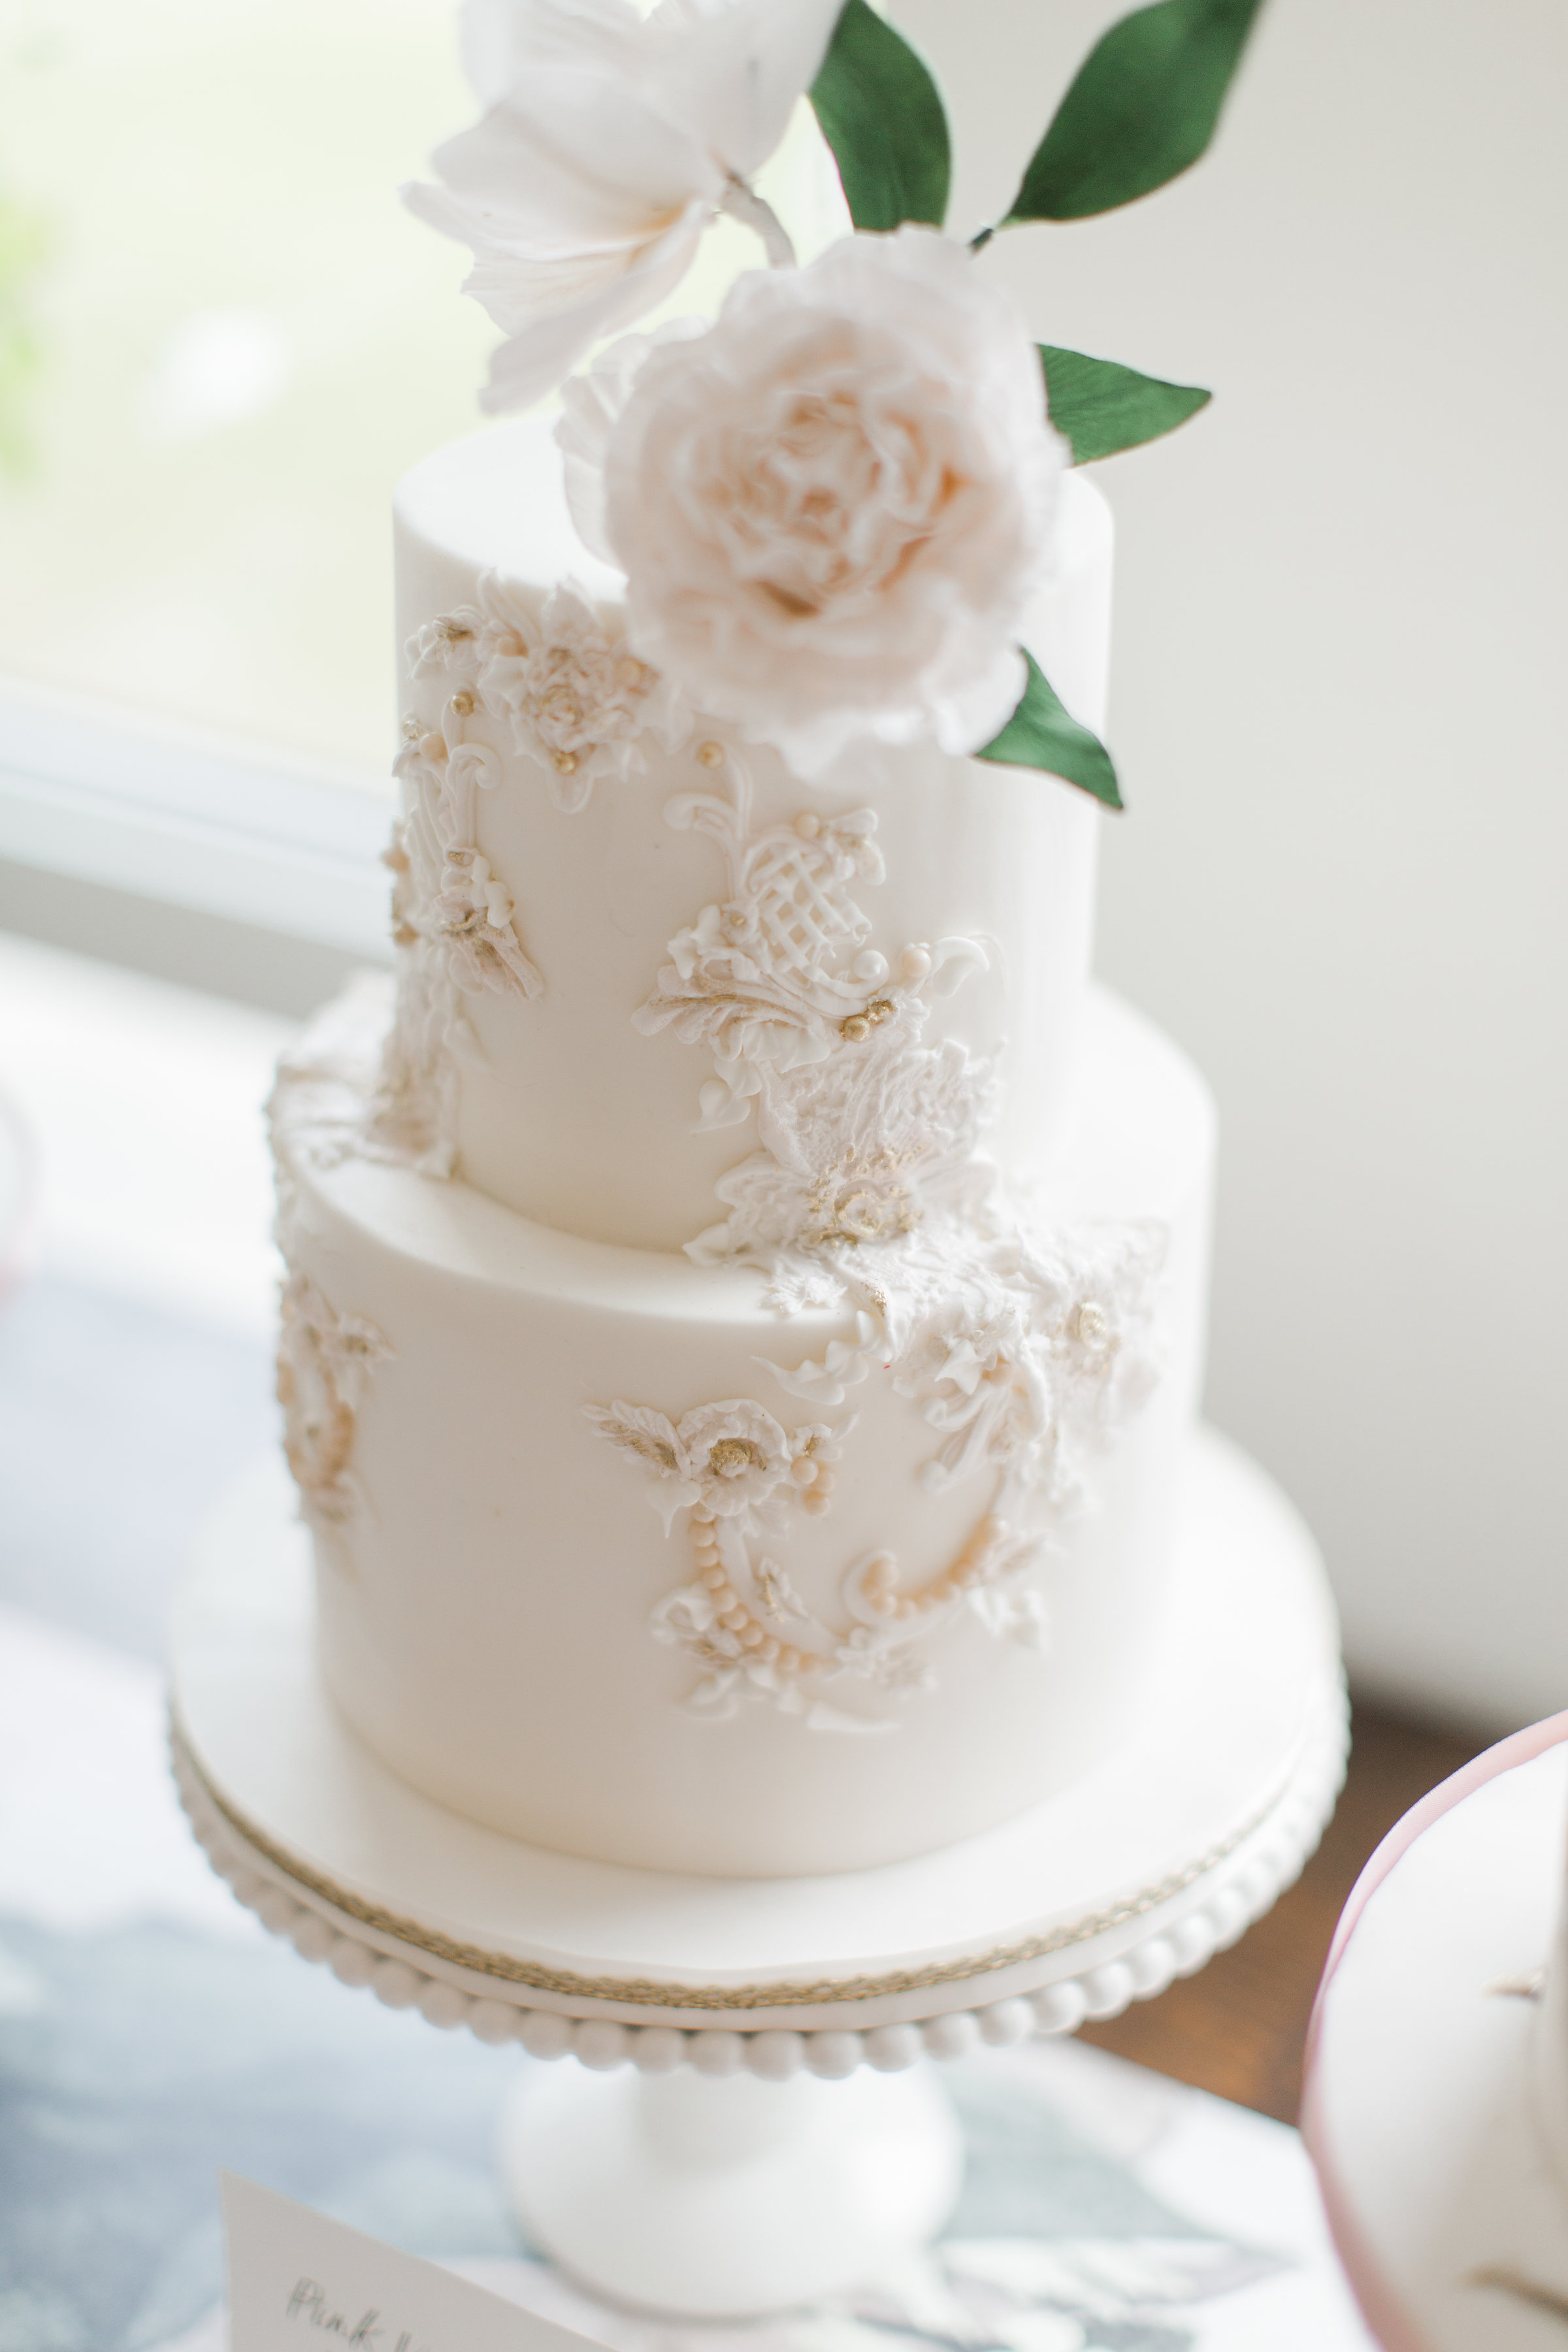 embroidered cake with flowers